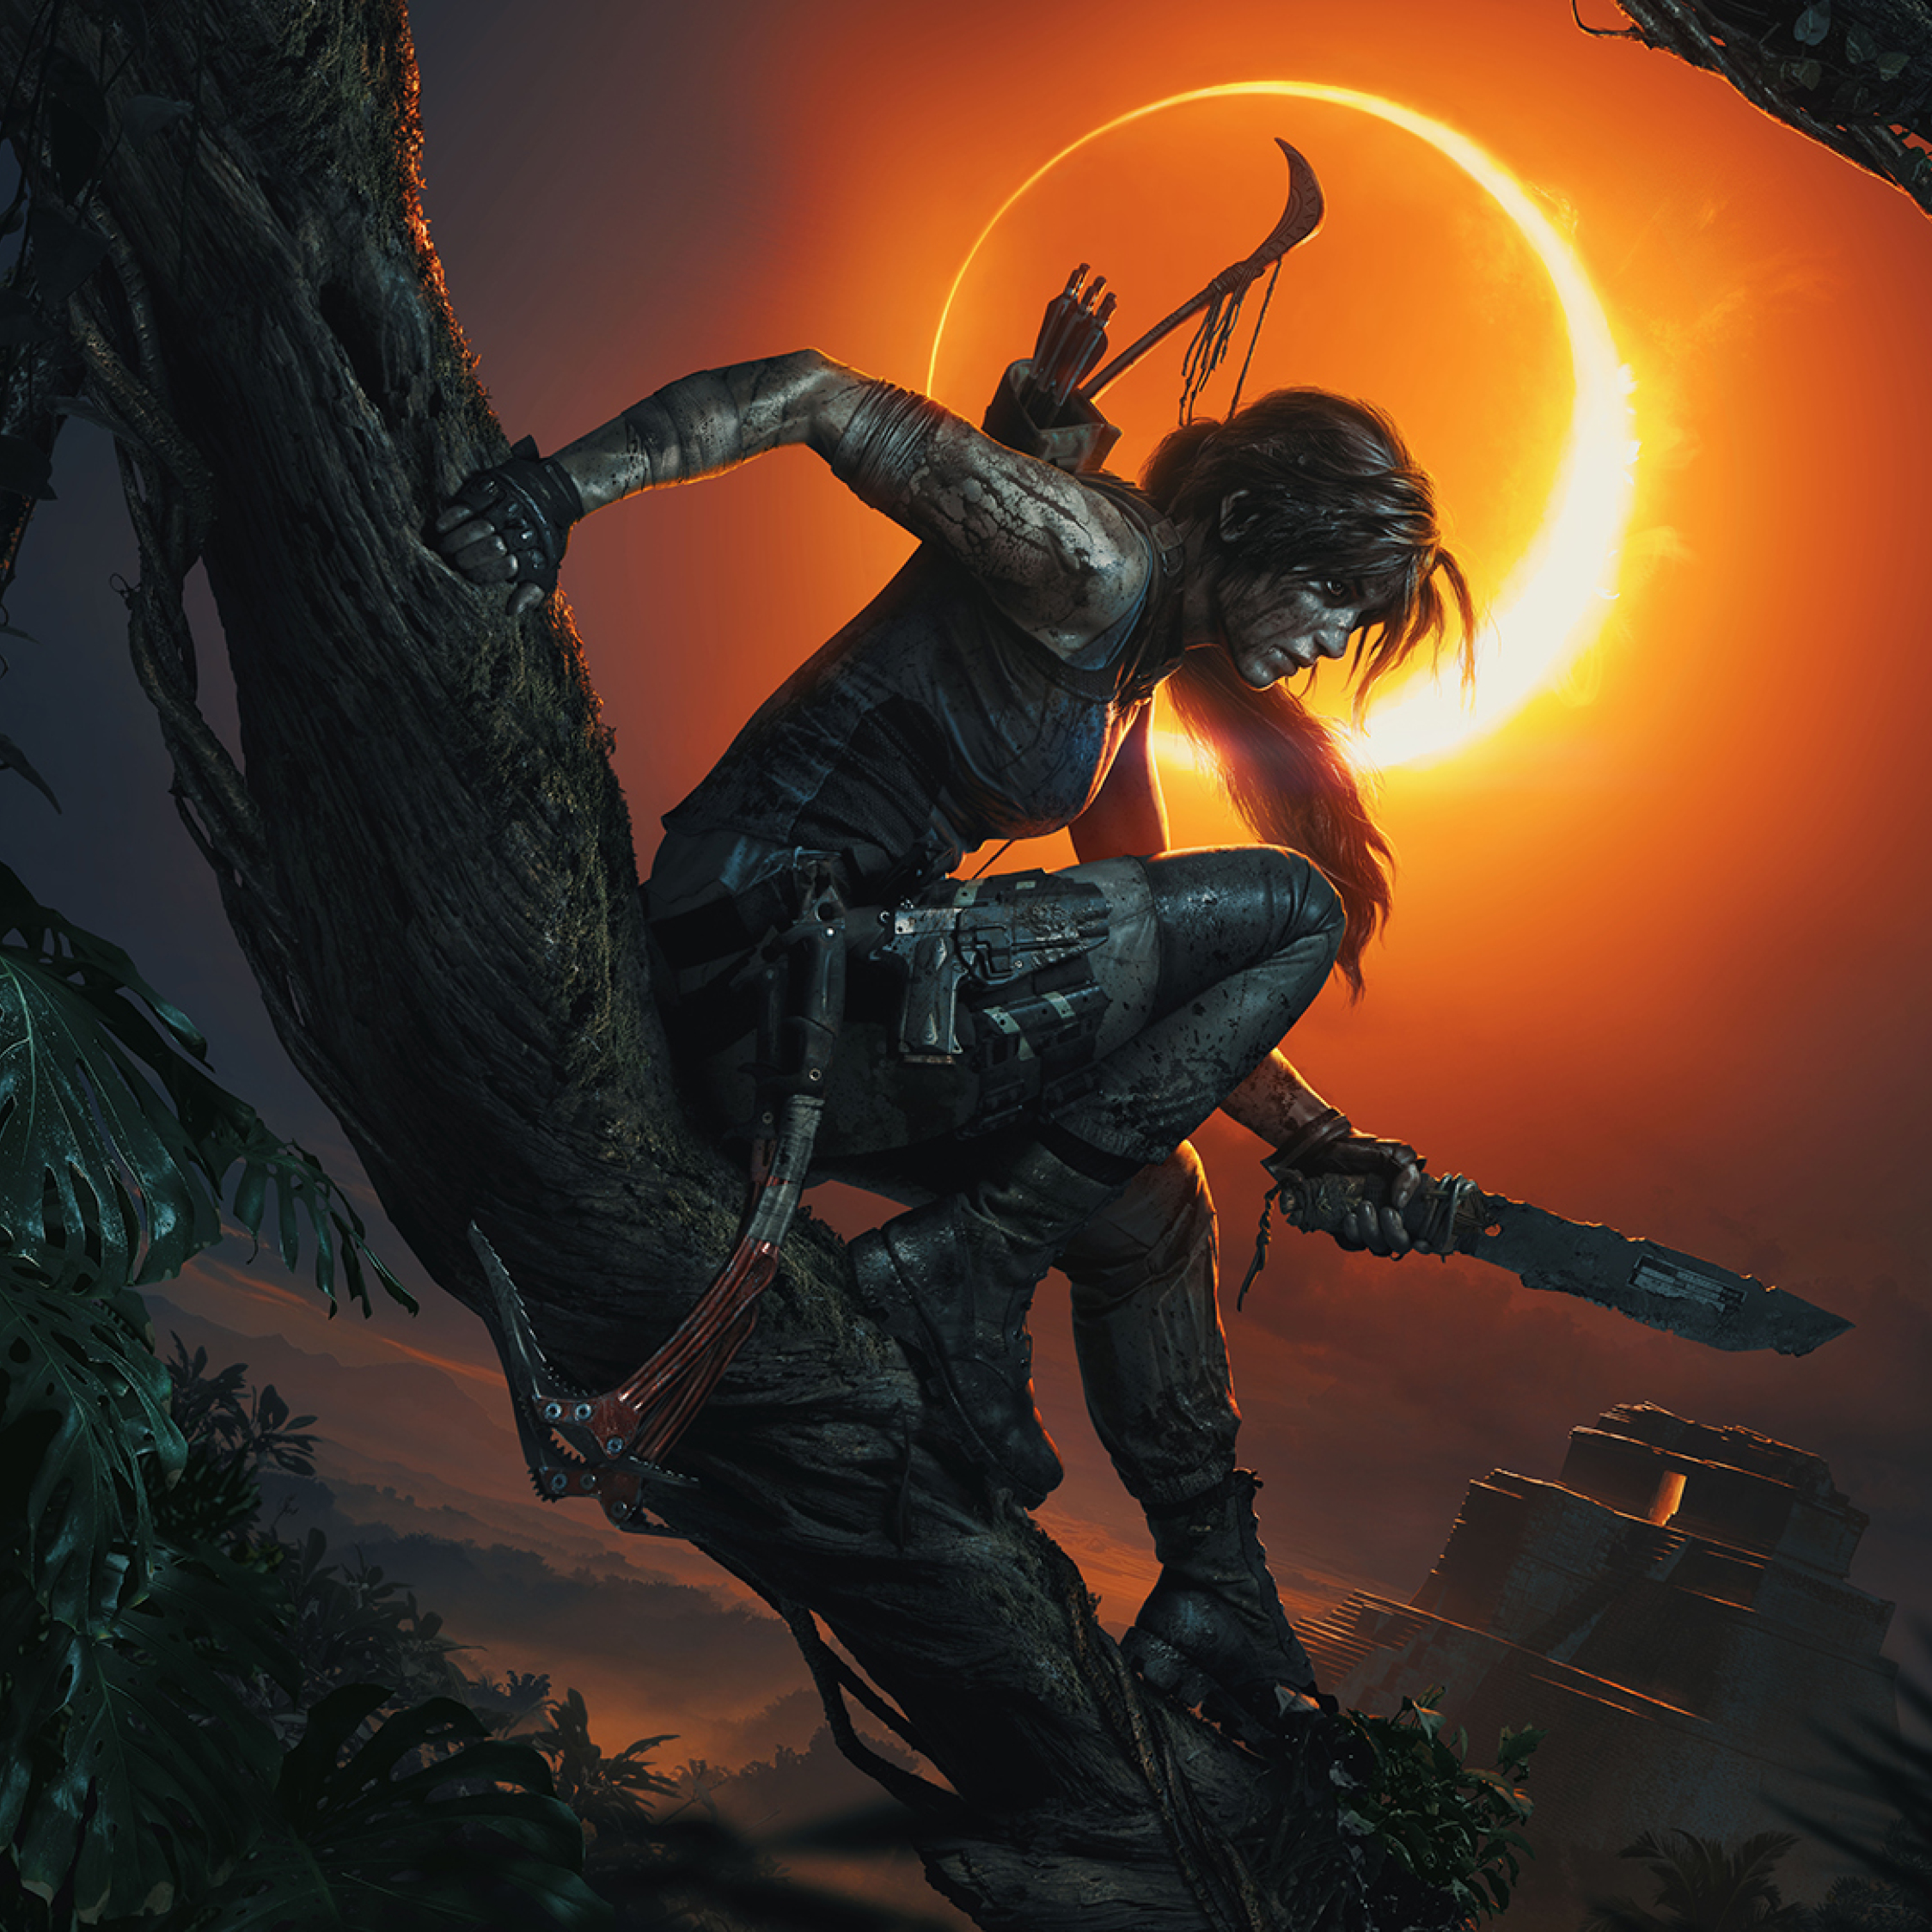 Lara Croft Shadow Of The Tomb Raider, Full HD Wallpaper